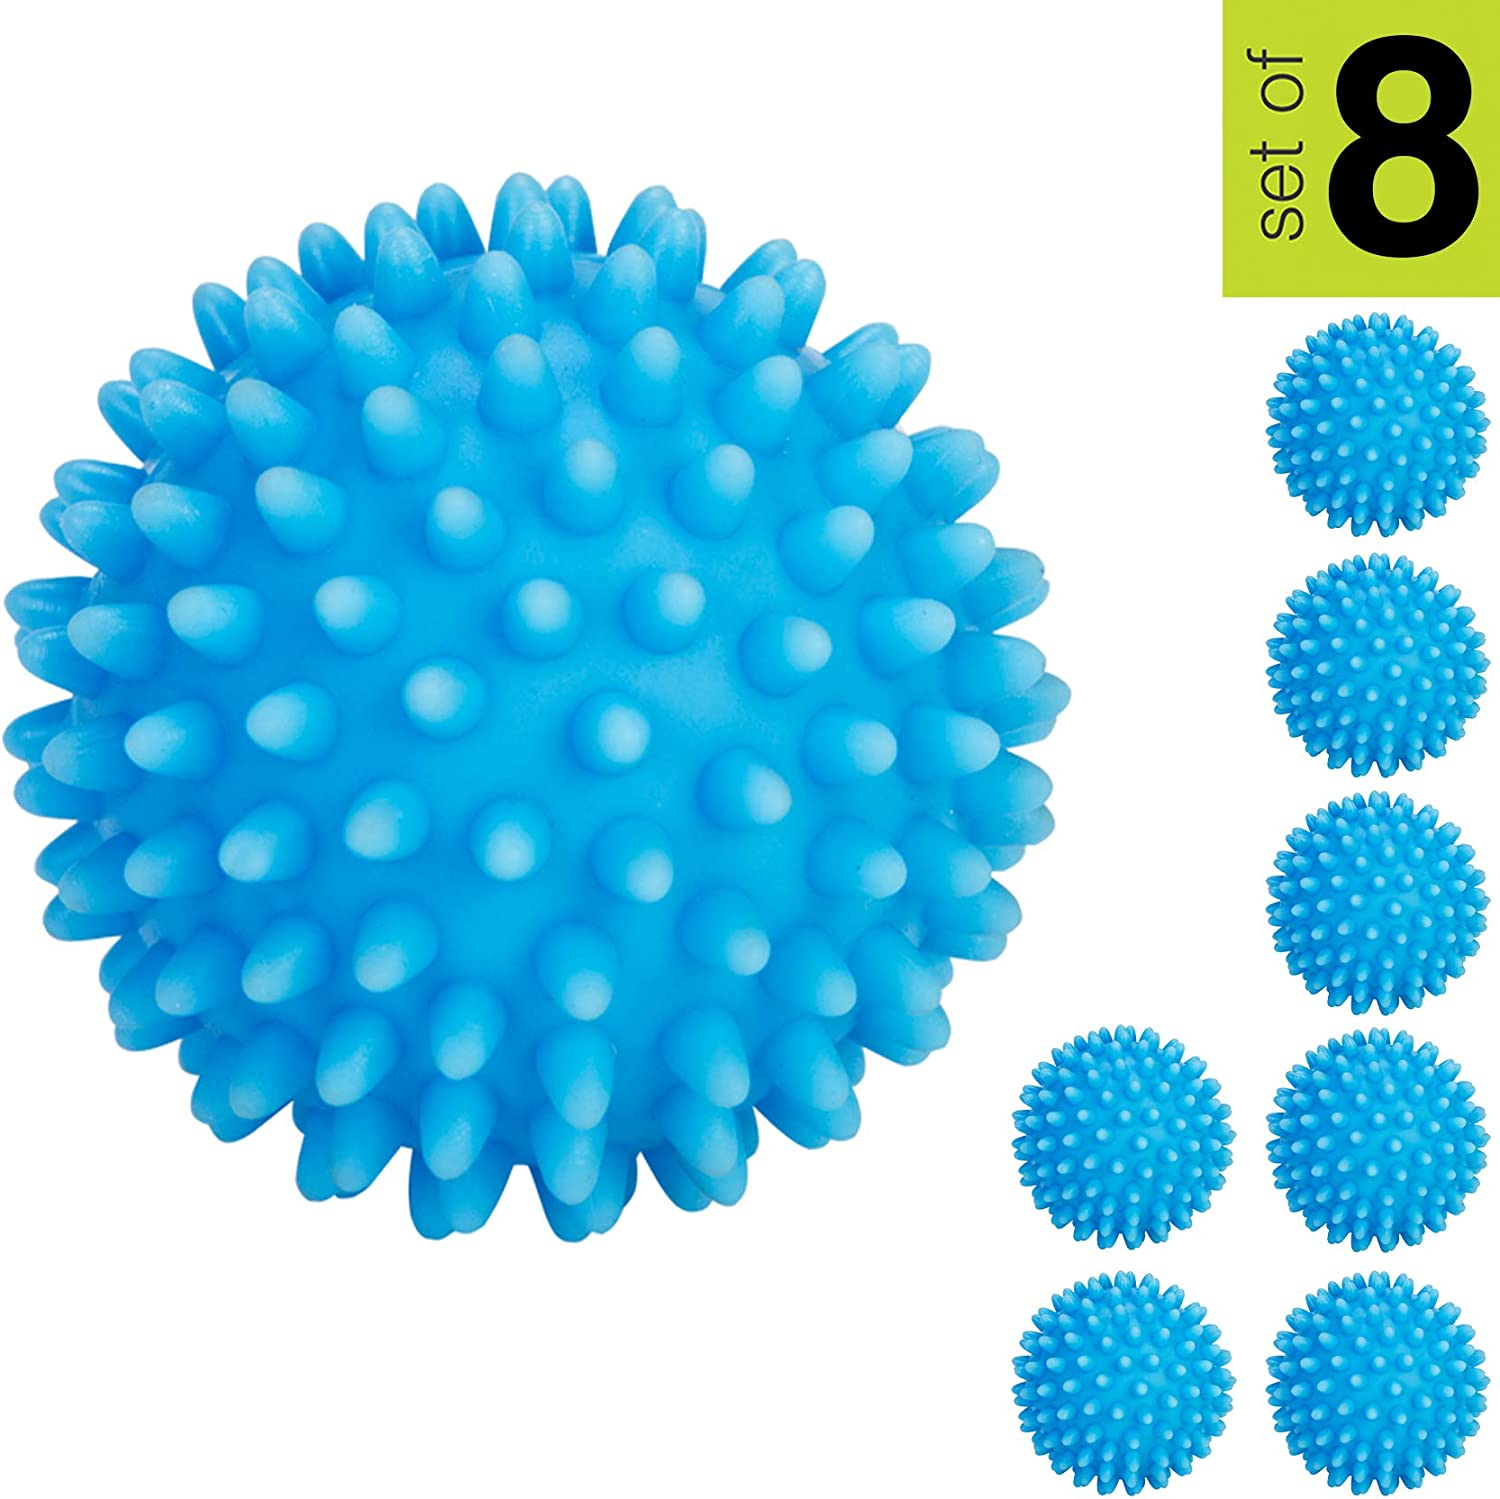 Smart Design Plastic Dryer Balls w/Spikes - Fabric Softener - Eliminates Wrinkles & Reduces Static - for Laundry, Clothes, Fabrics (8 Pack) [Blue]